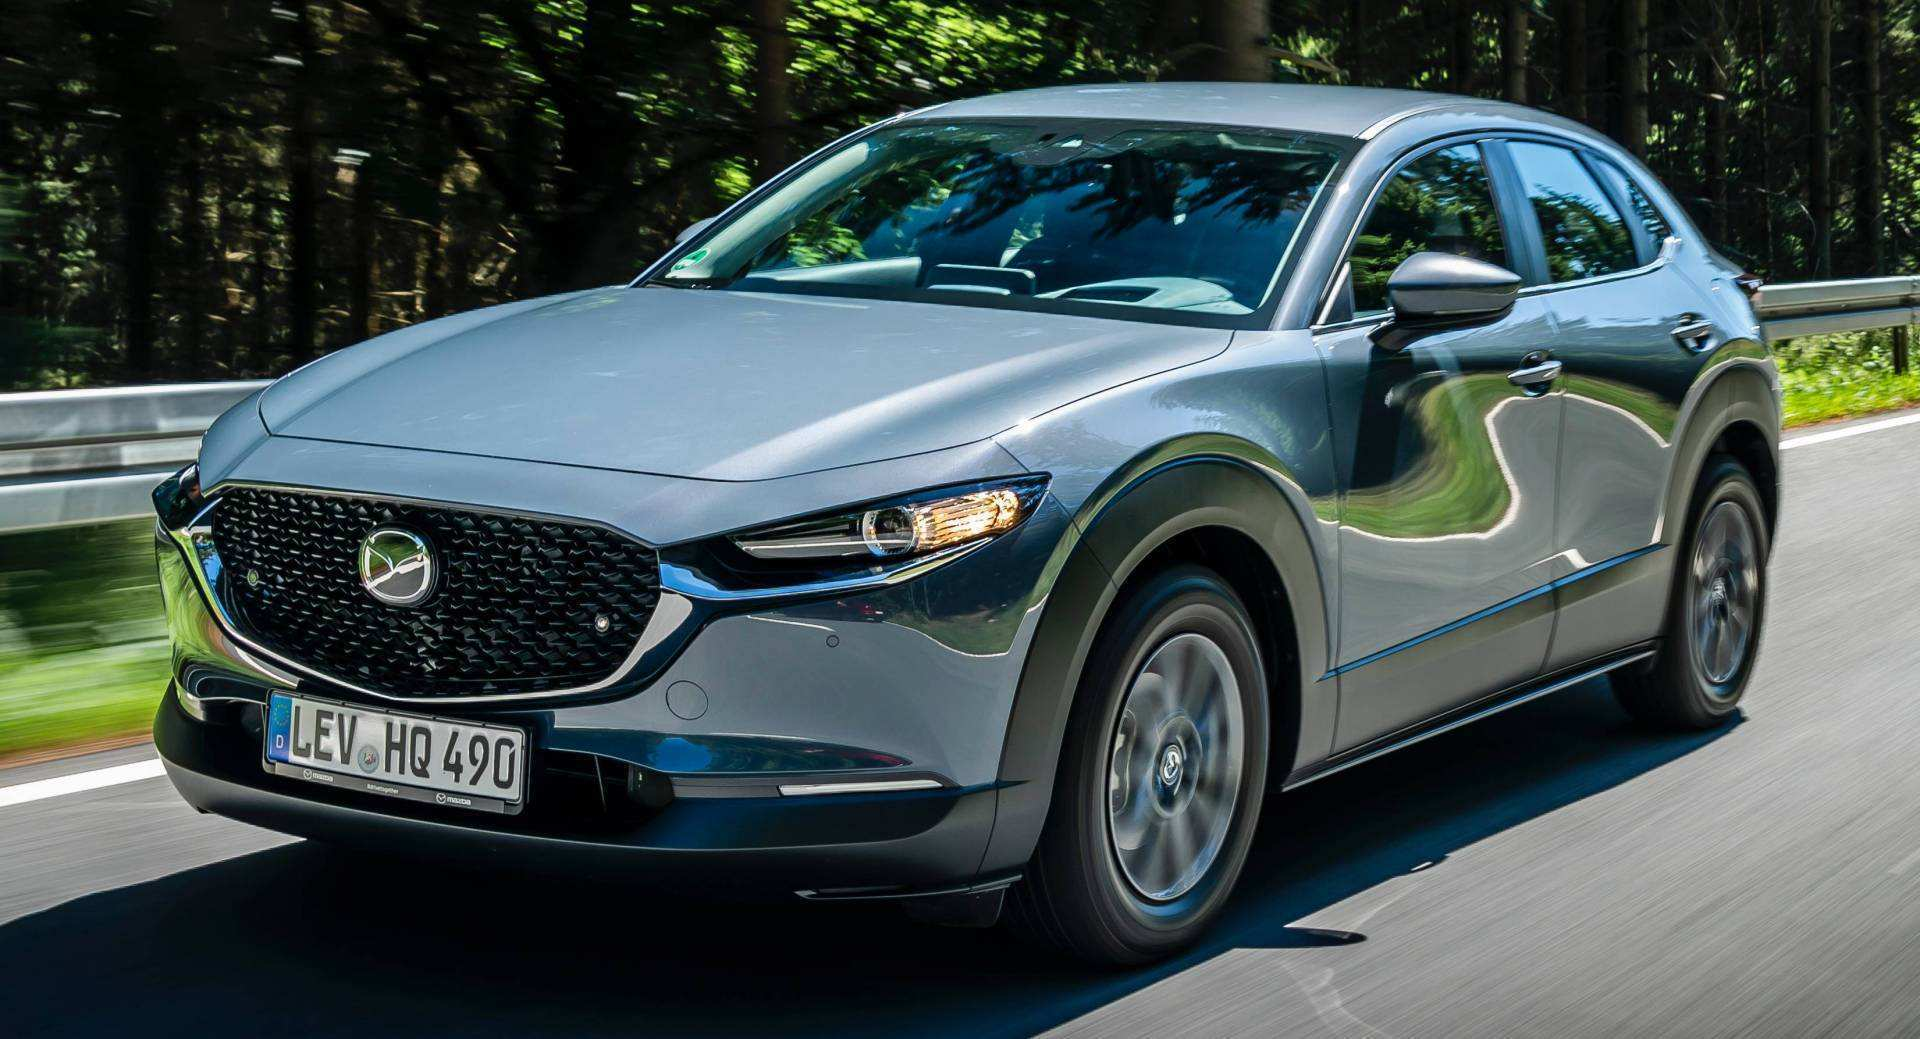 78 The Best 2020 Mazda Cx 30 Price Overview